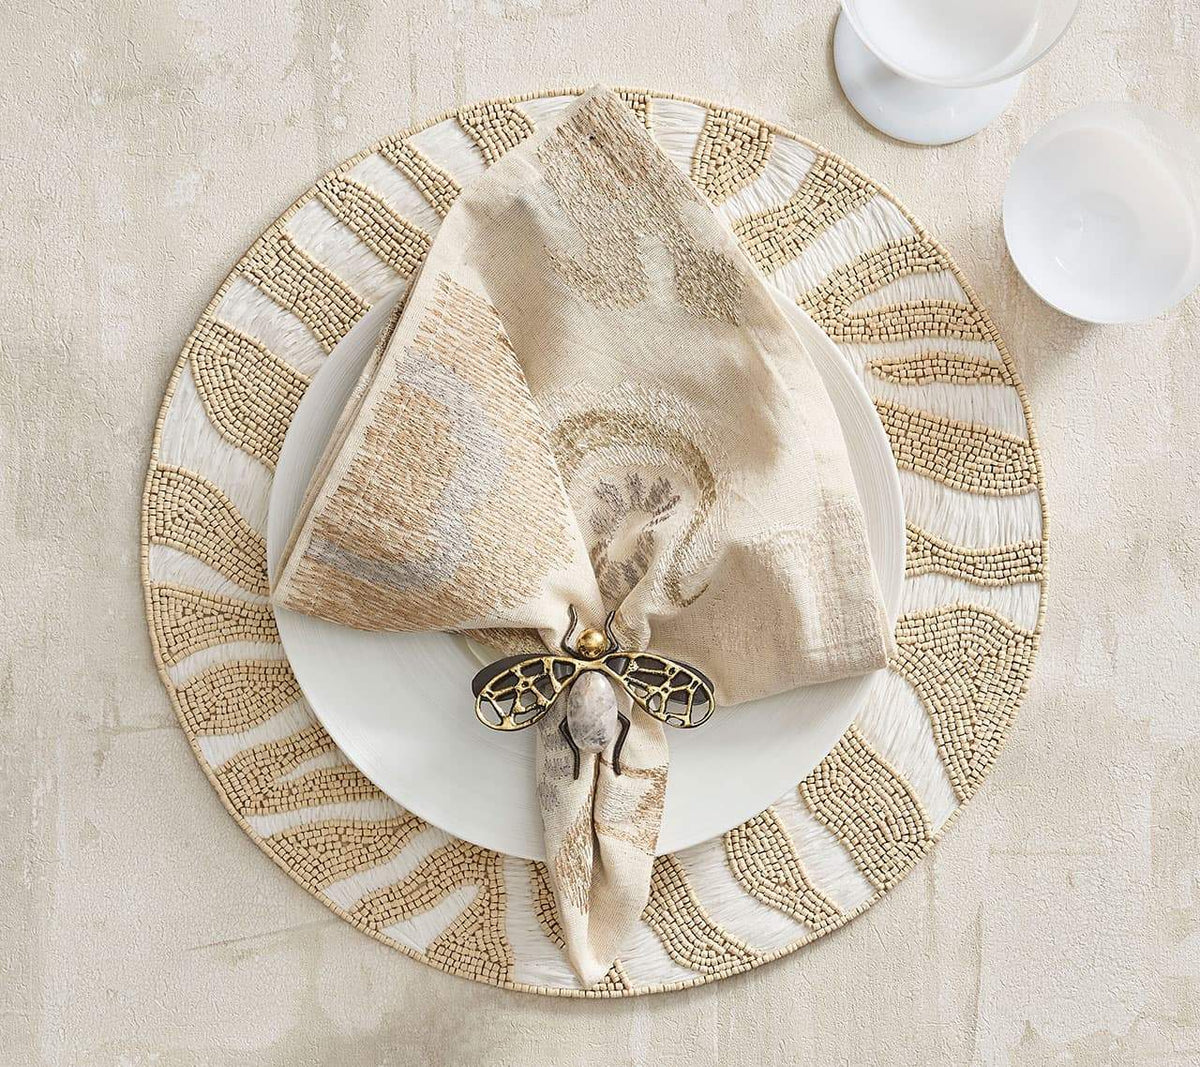 Marrakech Napkin in Natural, Ivory and Gold